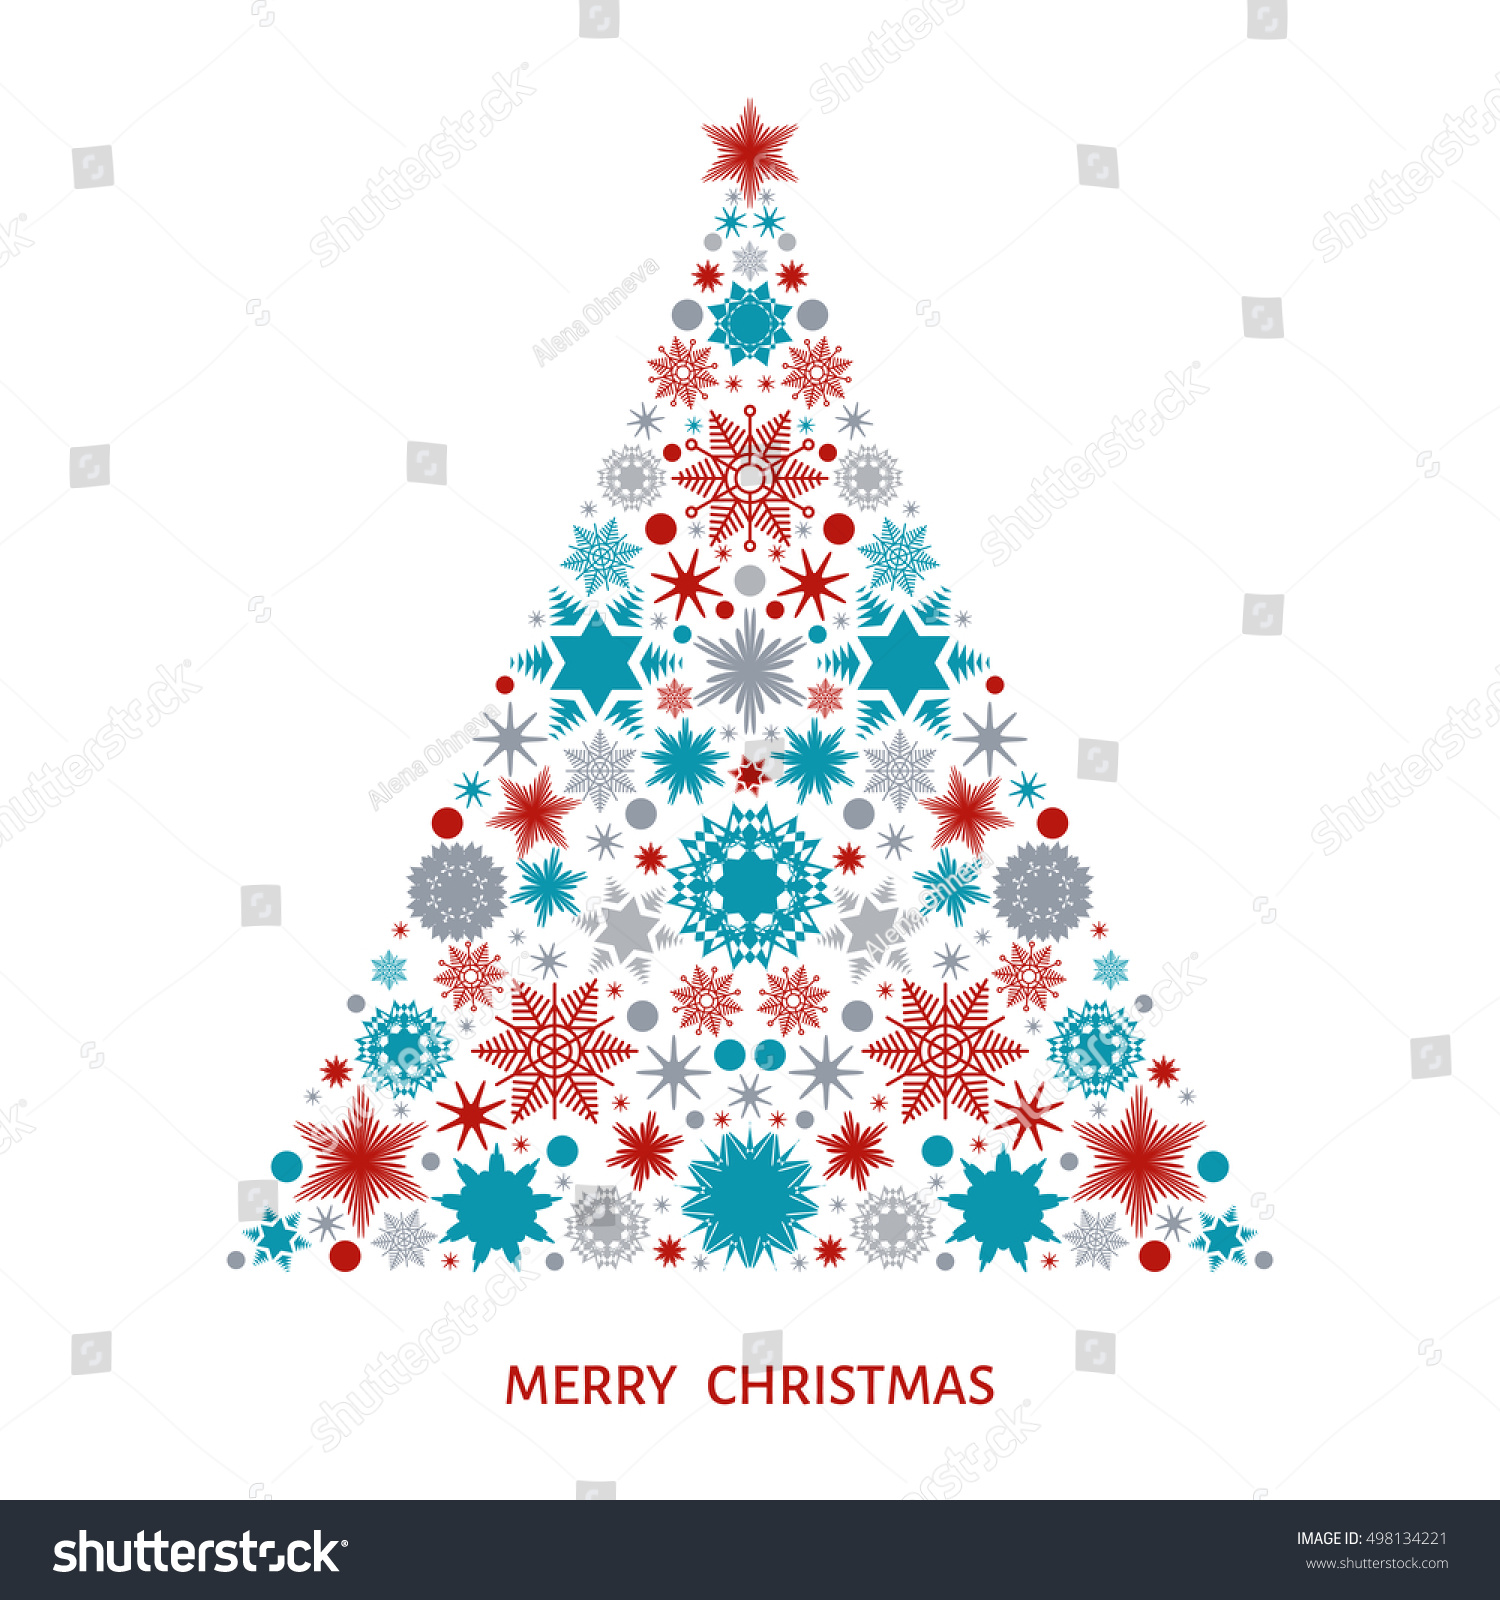 Christmas Tree Decoration Elements: Christmas Tree With Pattern From Varicolored Snowflakes